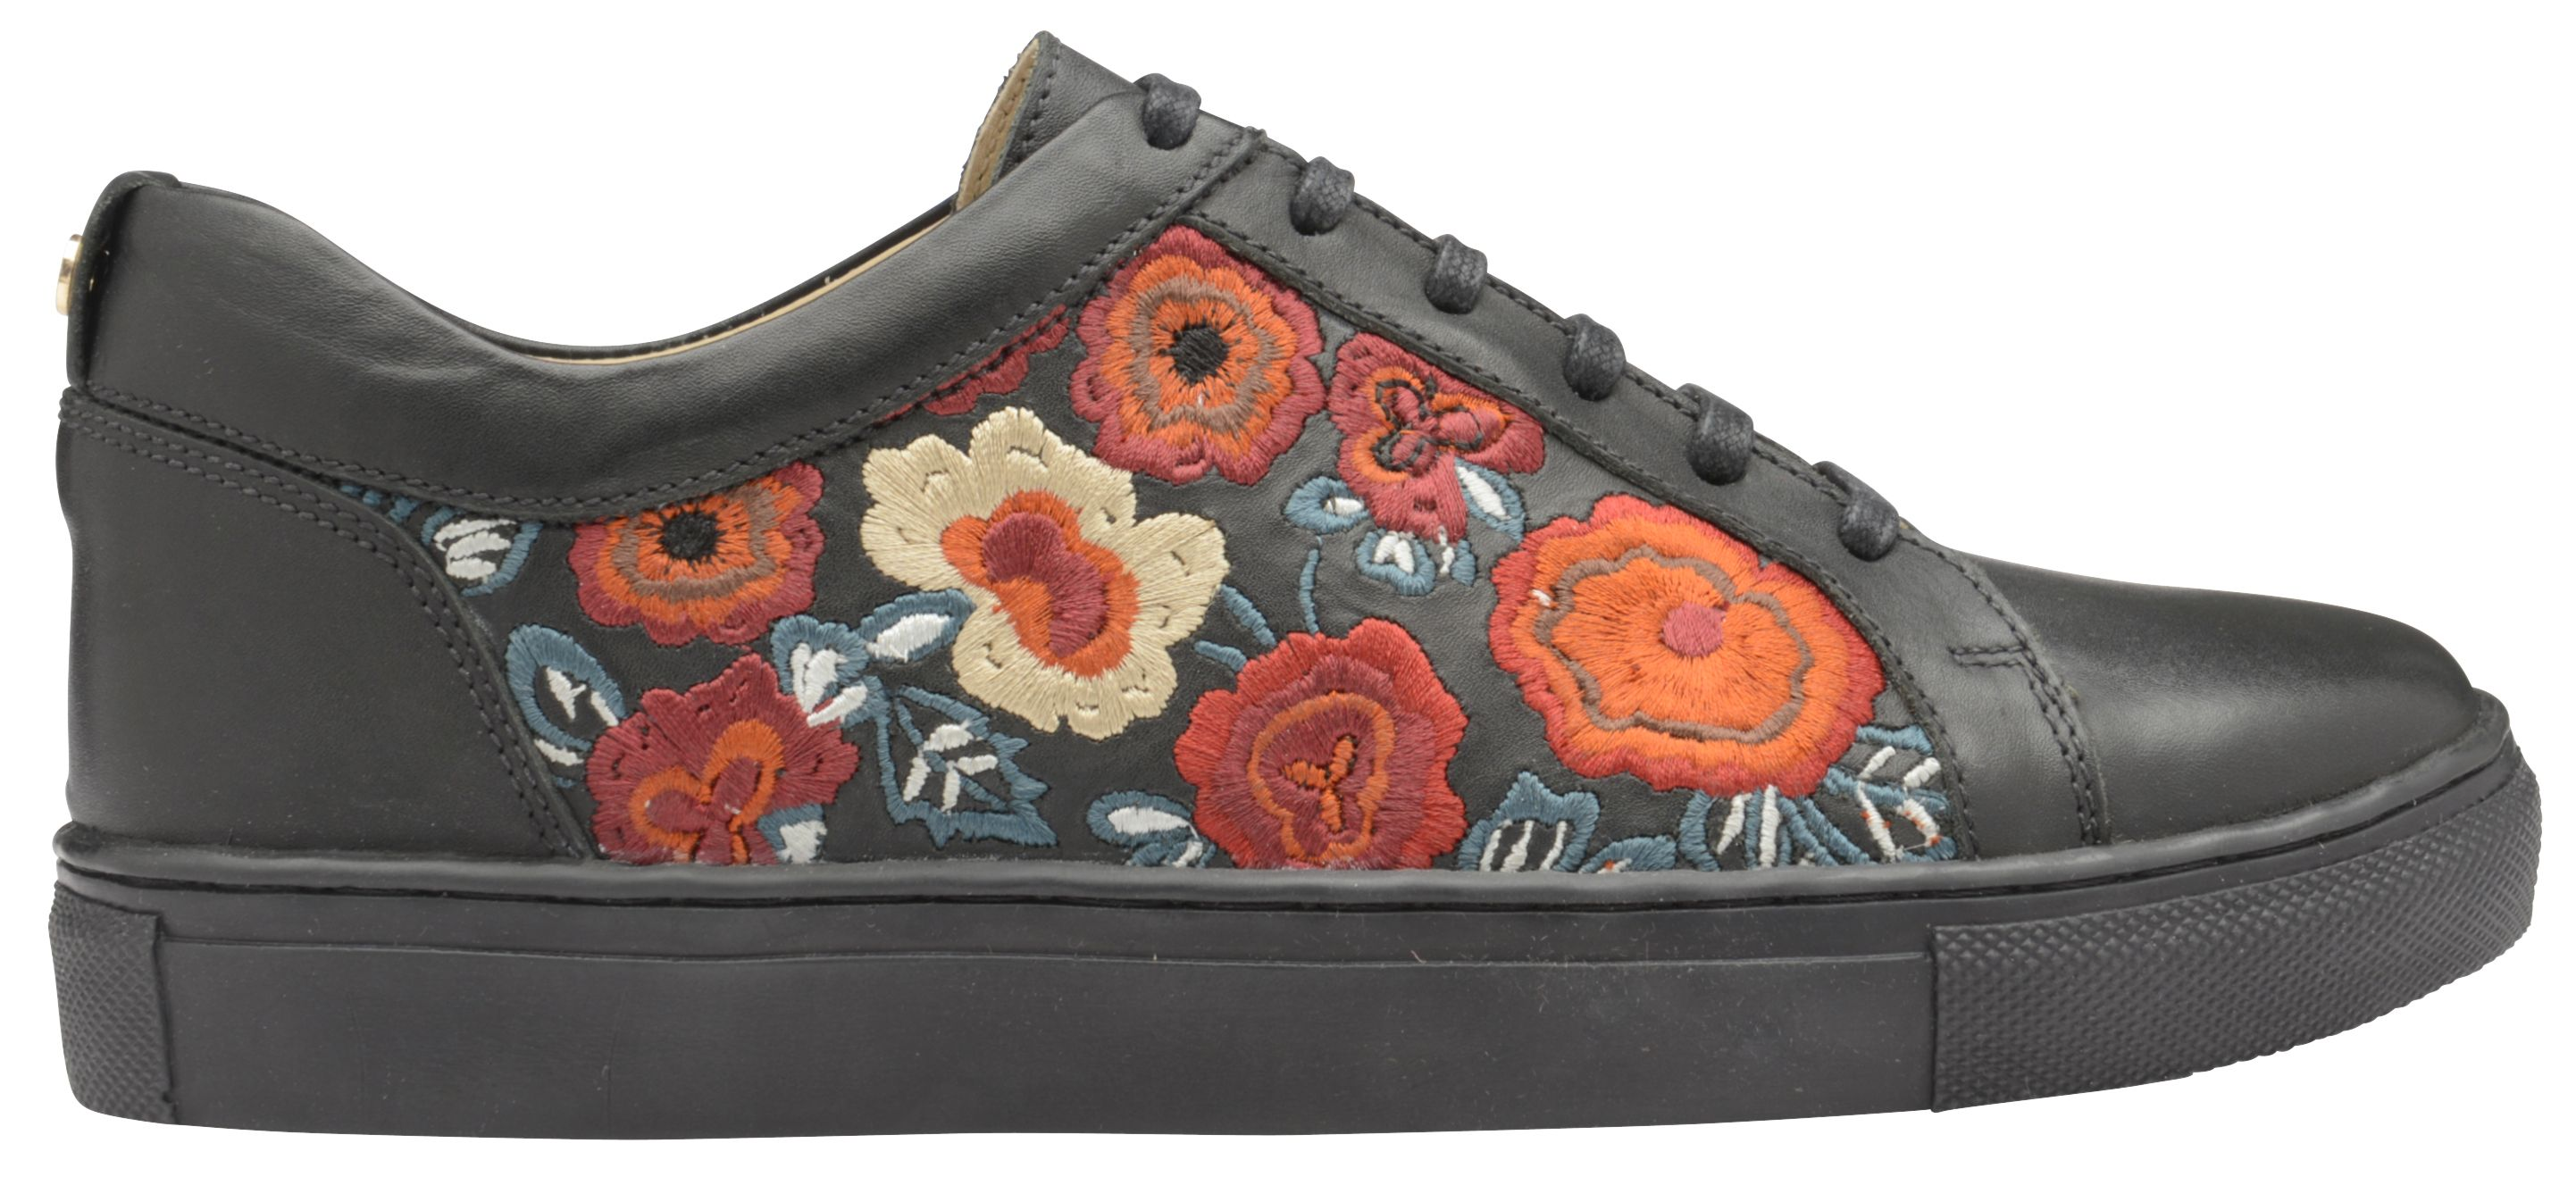 Ravel Garo Lace Up Floral Trainers, Black